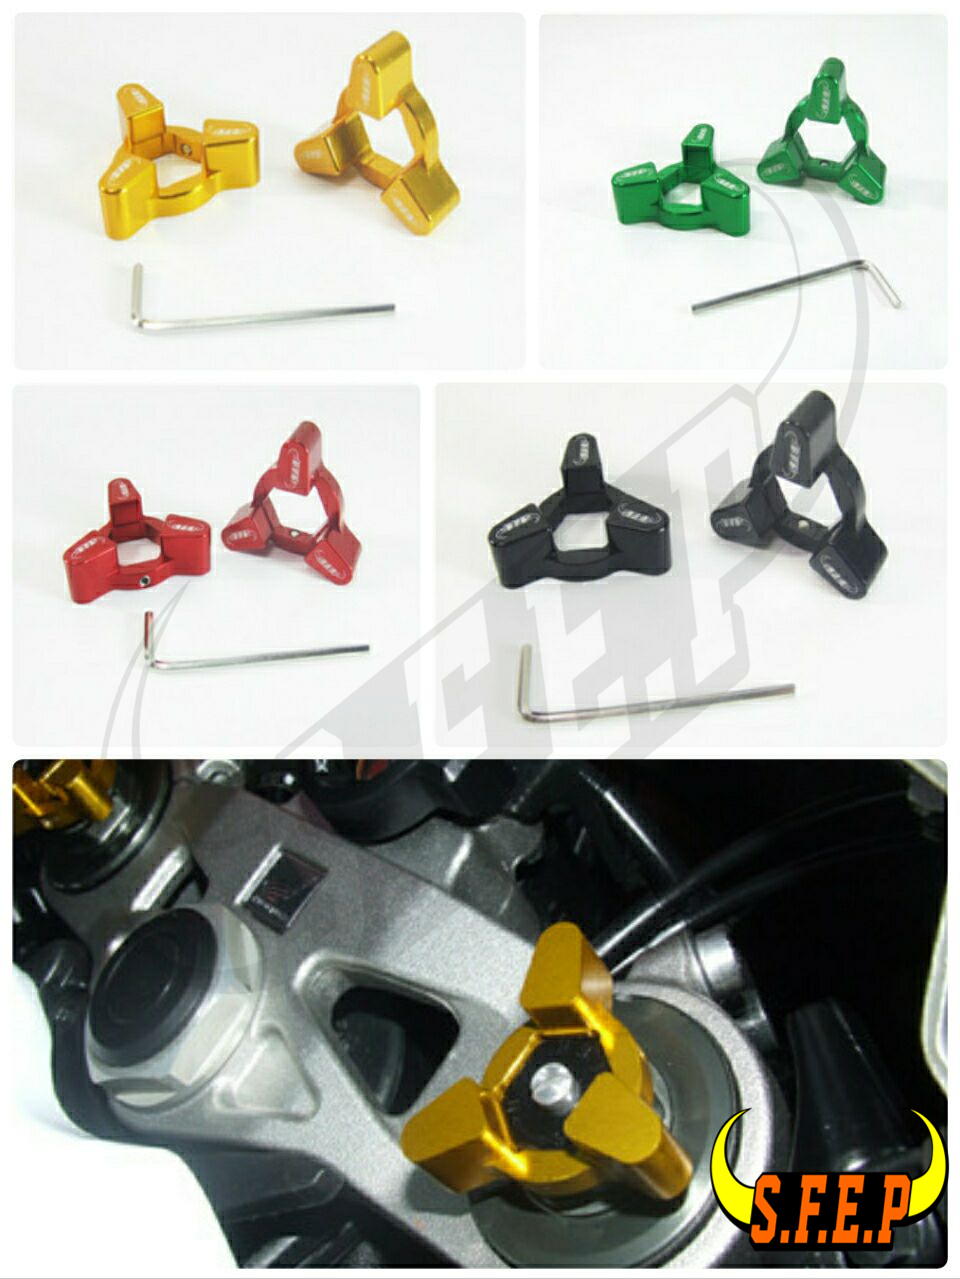 Motorcycle CNC Fork Preload Adjusters For Suzuki GSXR 600 06-10/GSXR 750 06-10/ GSX650F 08-10